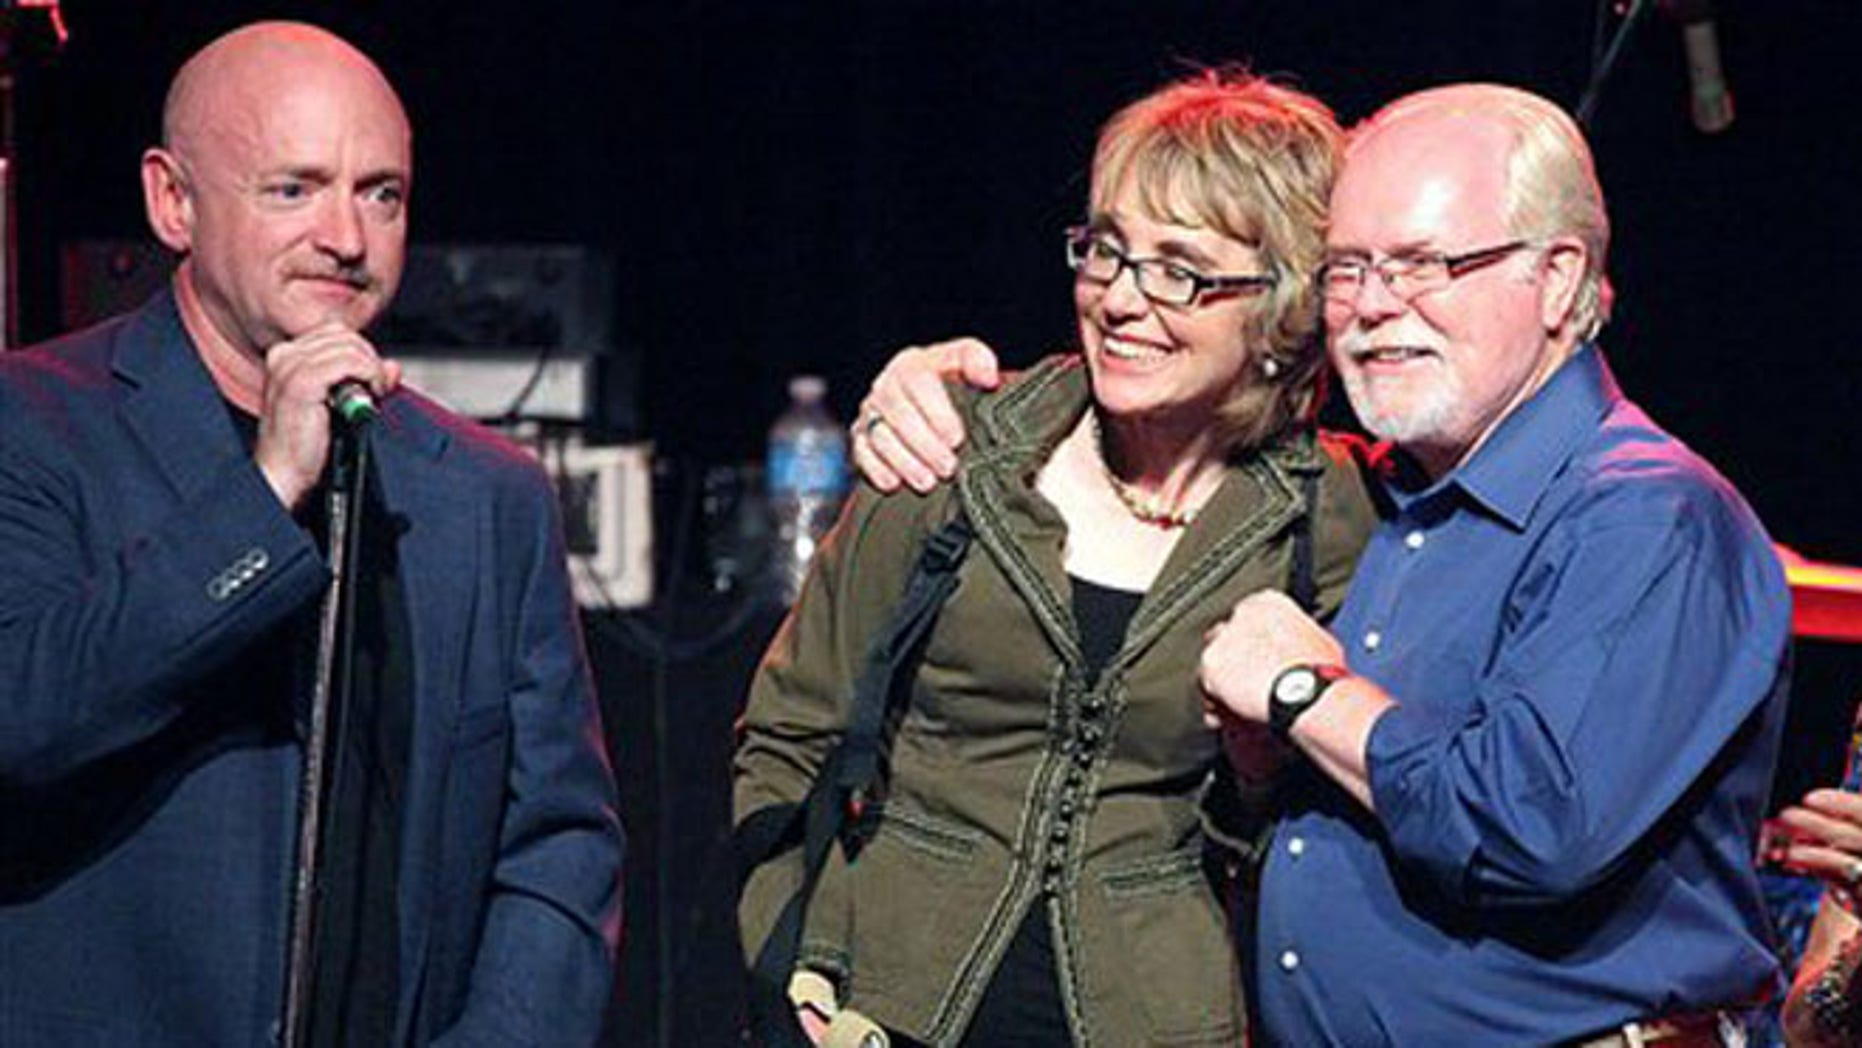 June 9, 2012: From left, Gabrielle Giffords' husband Mark Kelly, Giffords and congressional candidate Ron Barber gather during a get-out-the-vote rally at the Rialto Theater in downtown Tucson, Ariz.